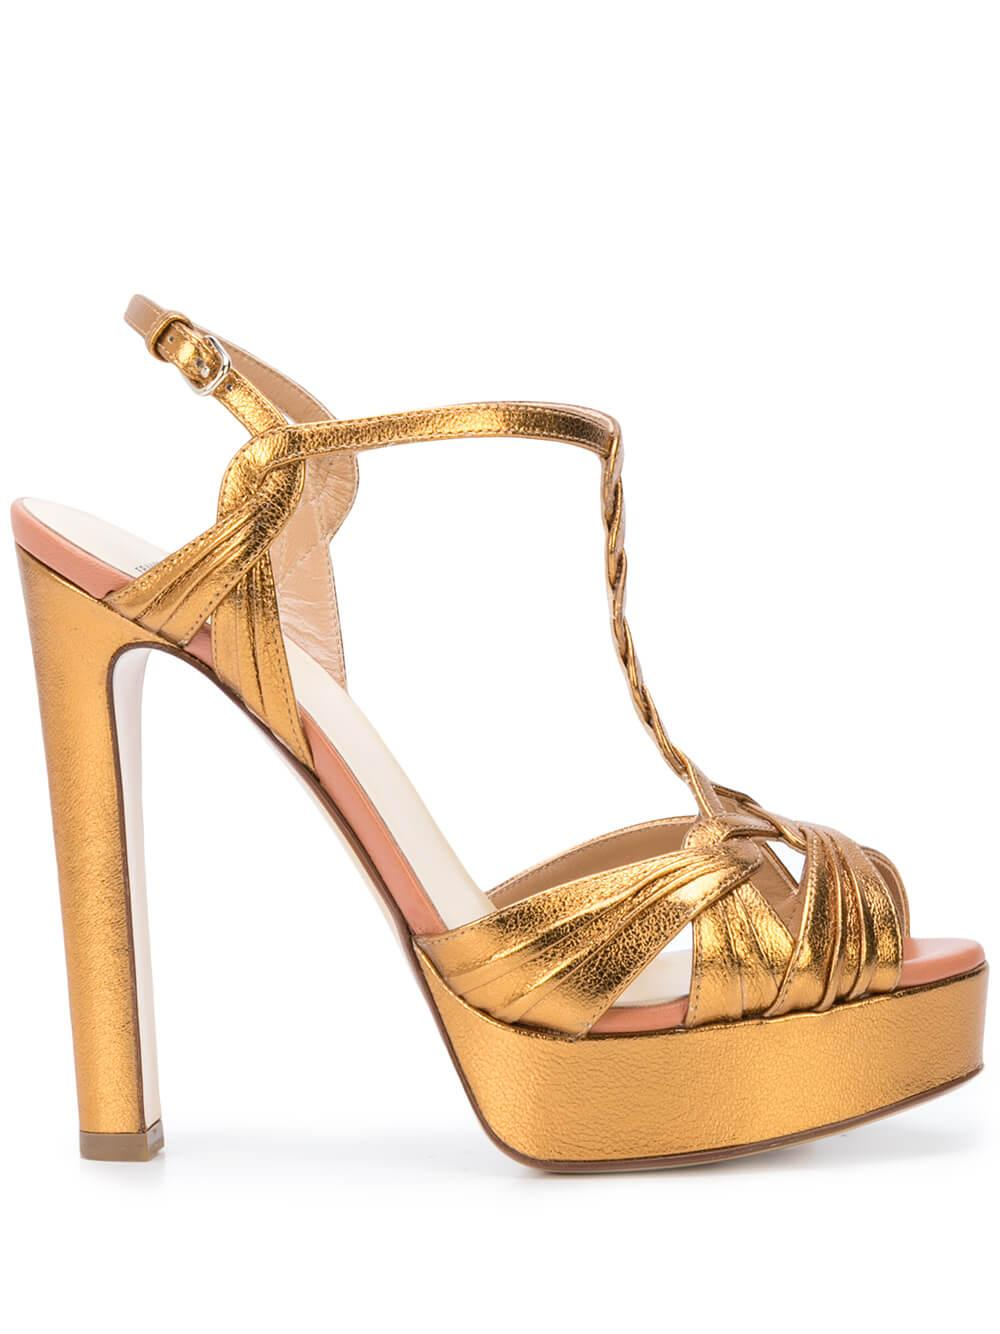 Metallic Laminate 130mm Platform T- Strap Sandal Item # R1S384-211-R20